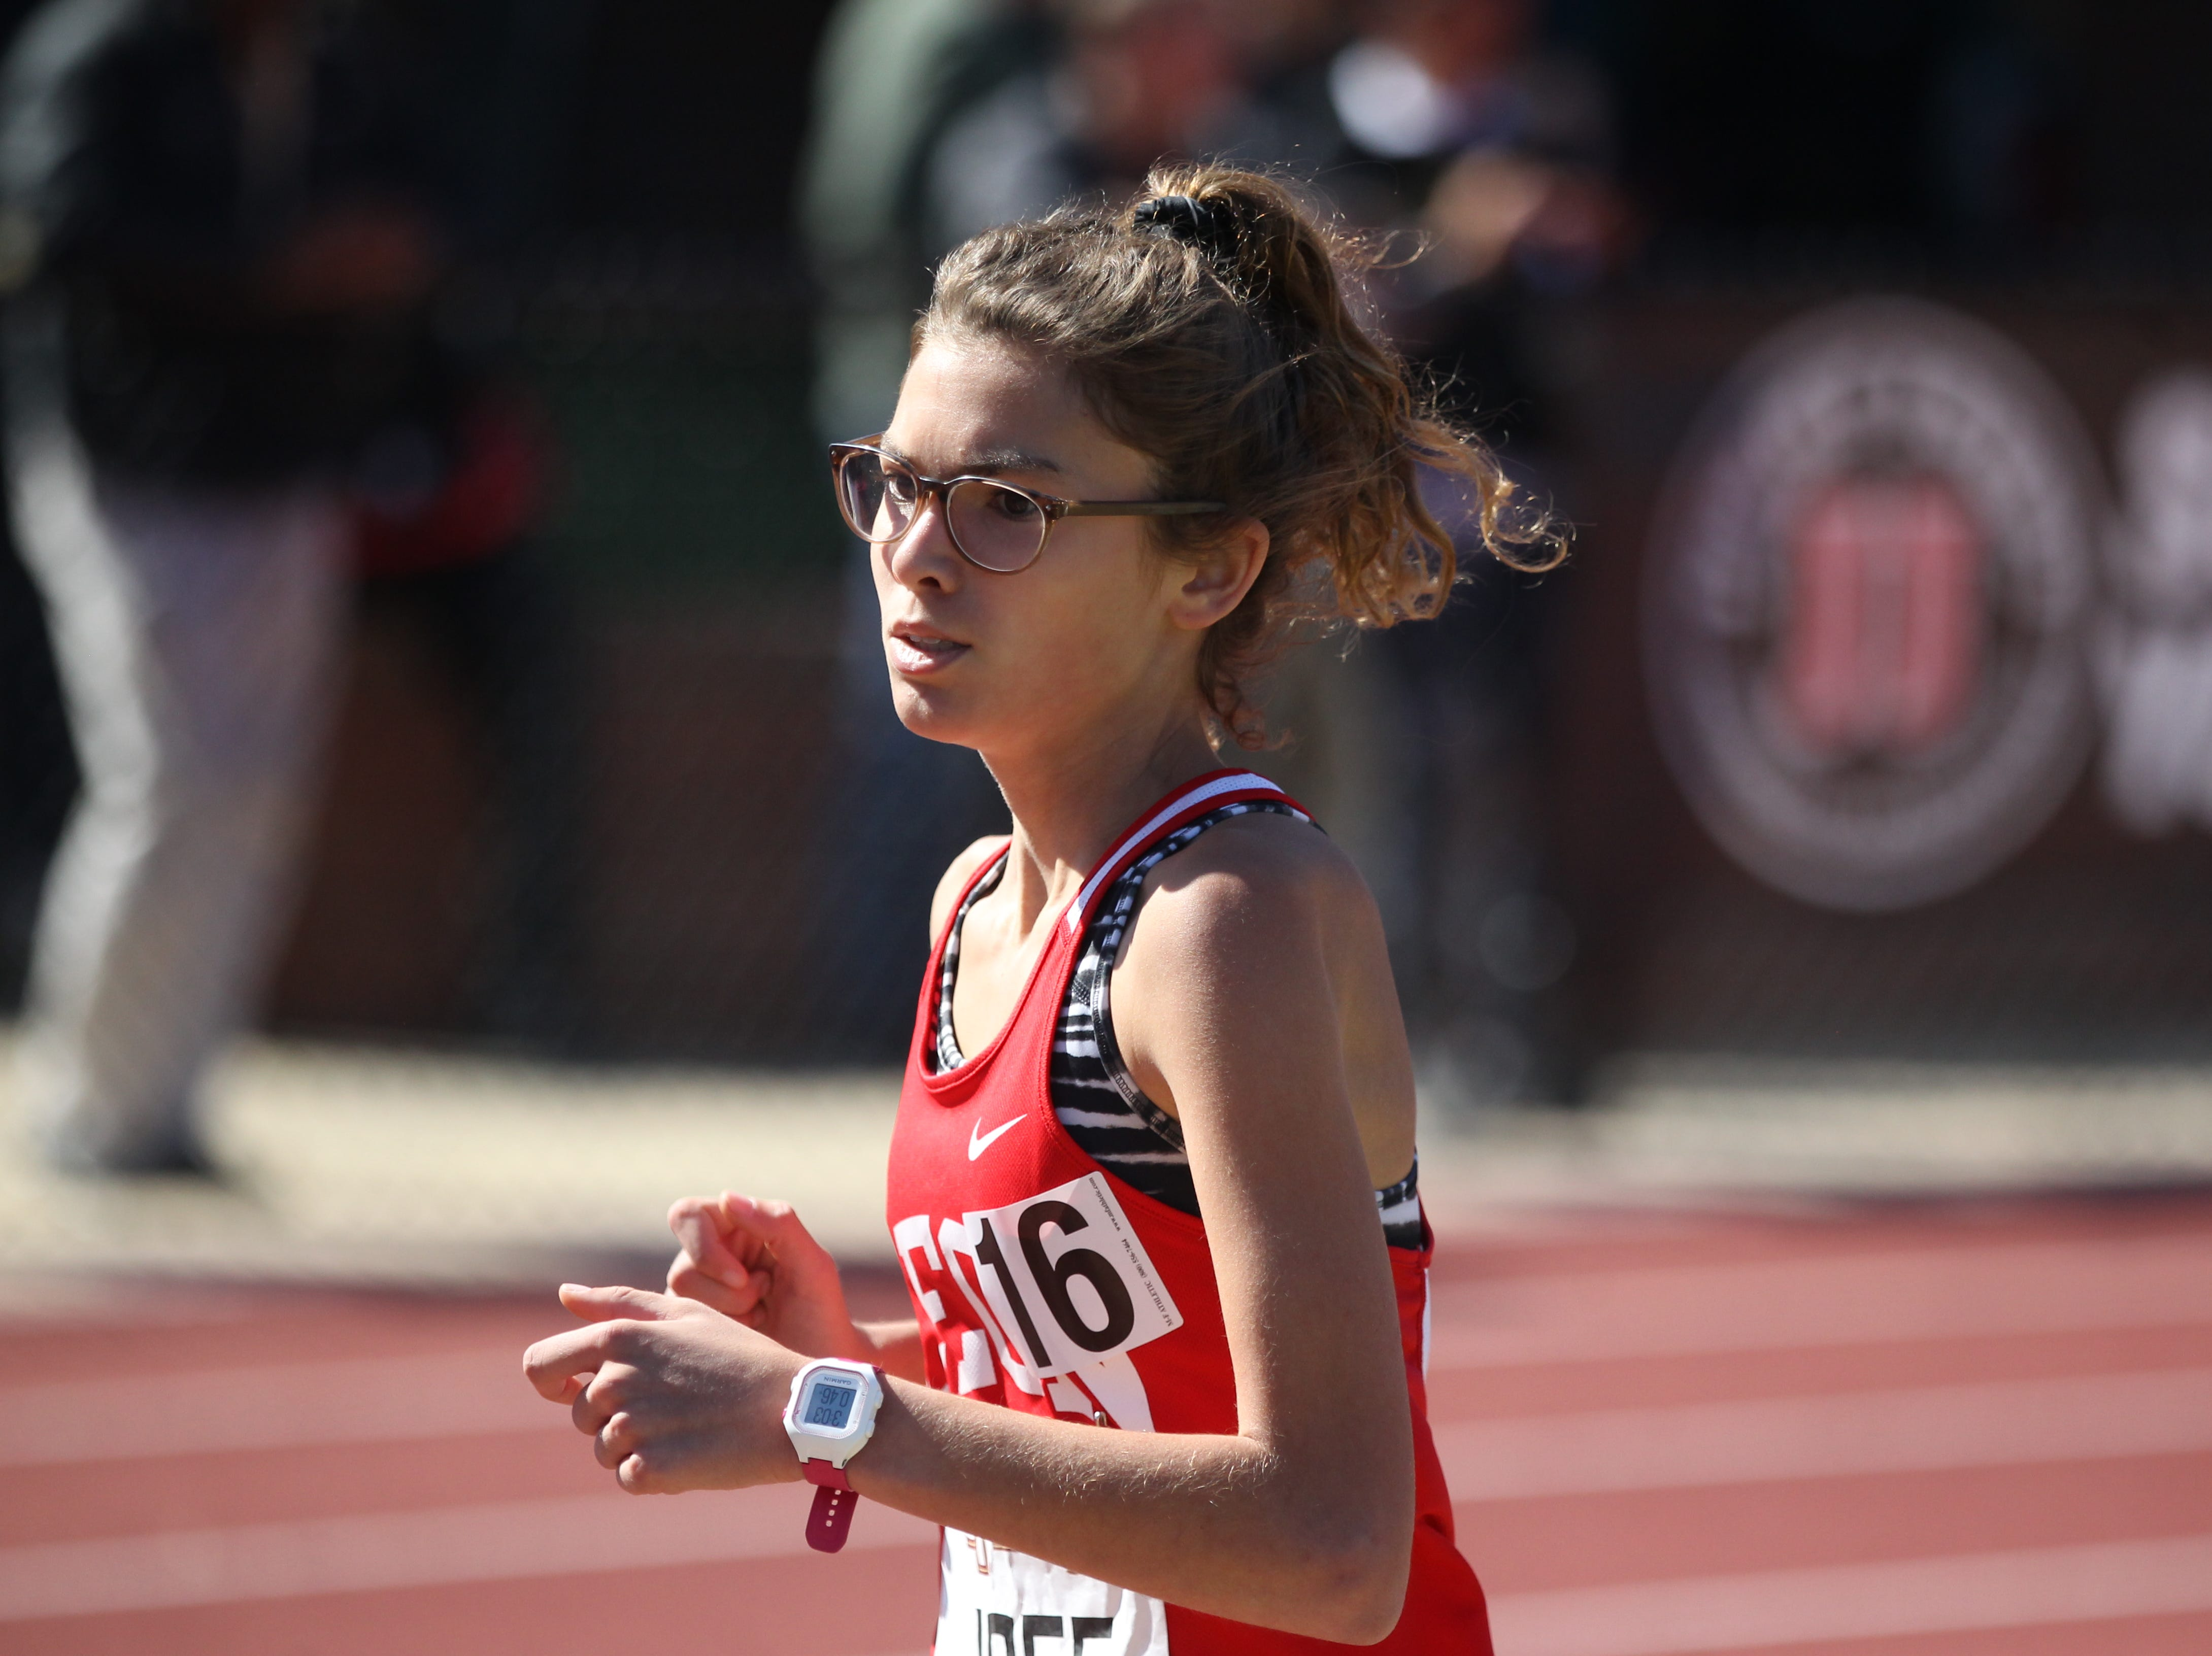 Leon sophomore Lilli Unger runs the 1600 during the 40th annual FSU Relays at Mike Long Track on Saturday, March 23, 2019.